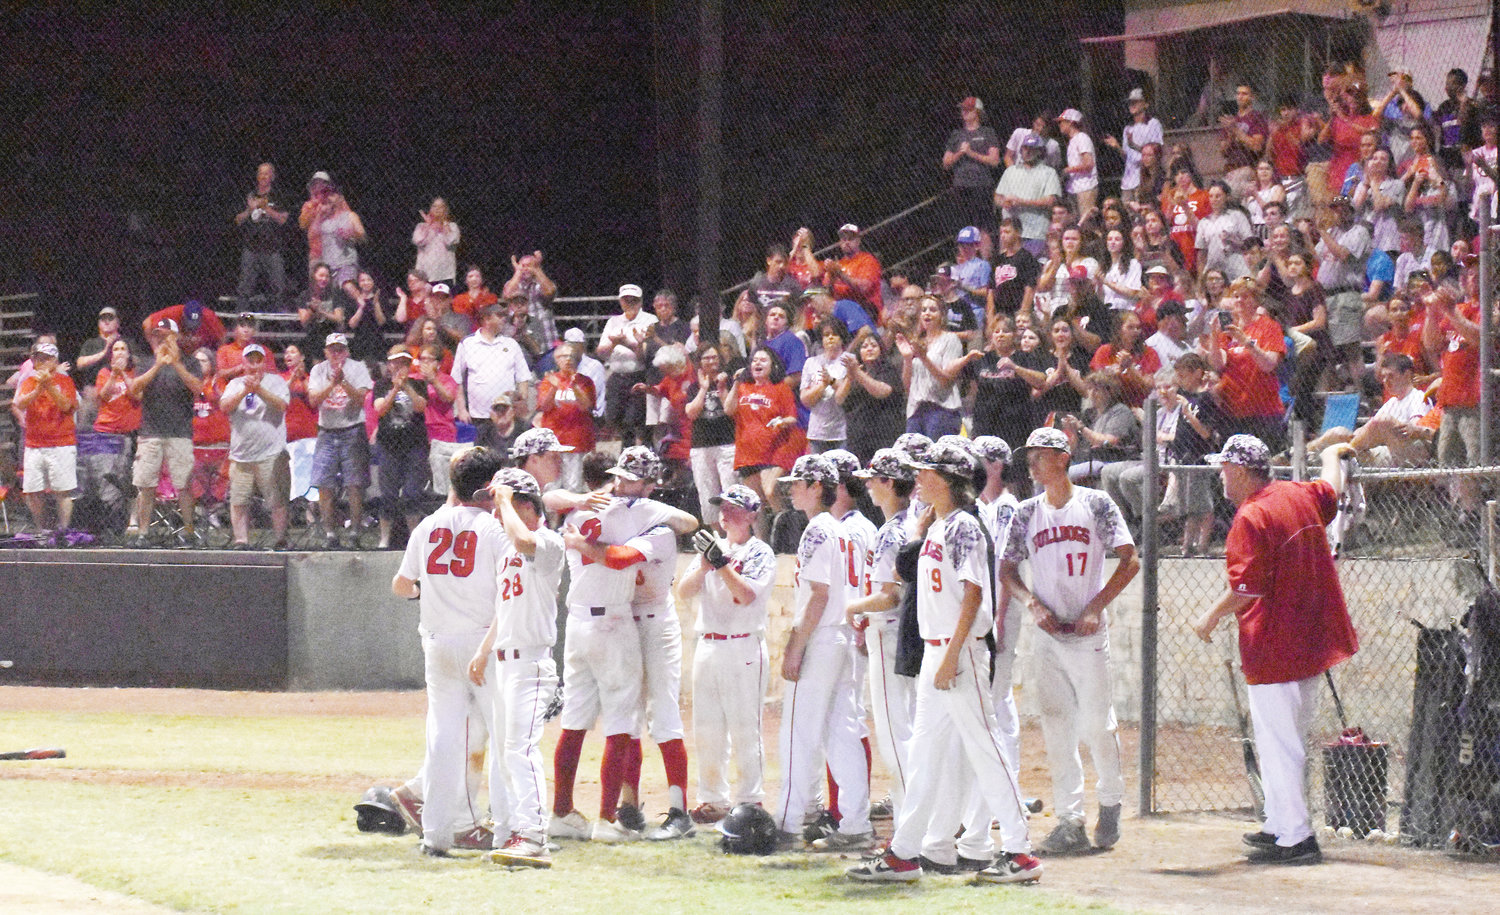 Kelly Snow | The Courier-Times.The Roxboro Community School baseball team gets a standing ovation from the home faithful at Optimist Park following the conclusion of game two of the 1A West regional final against Uwharrie Charter.